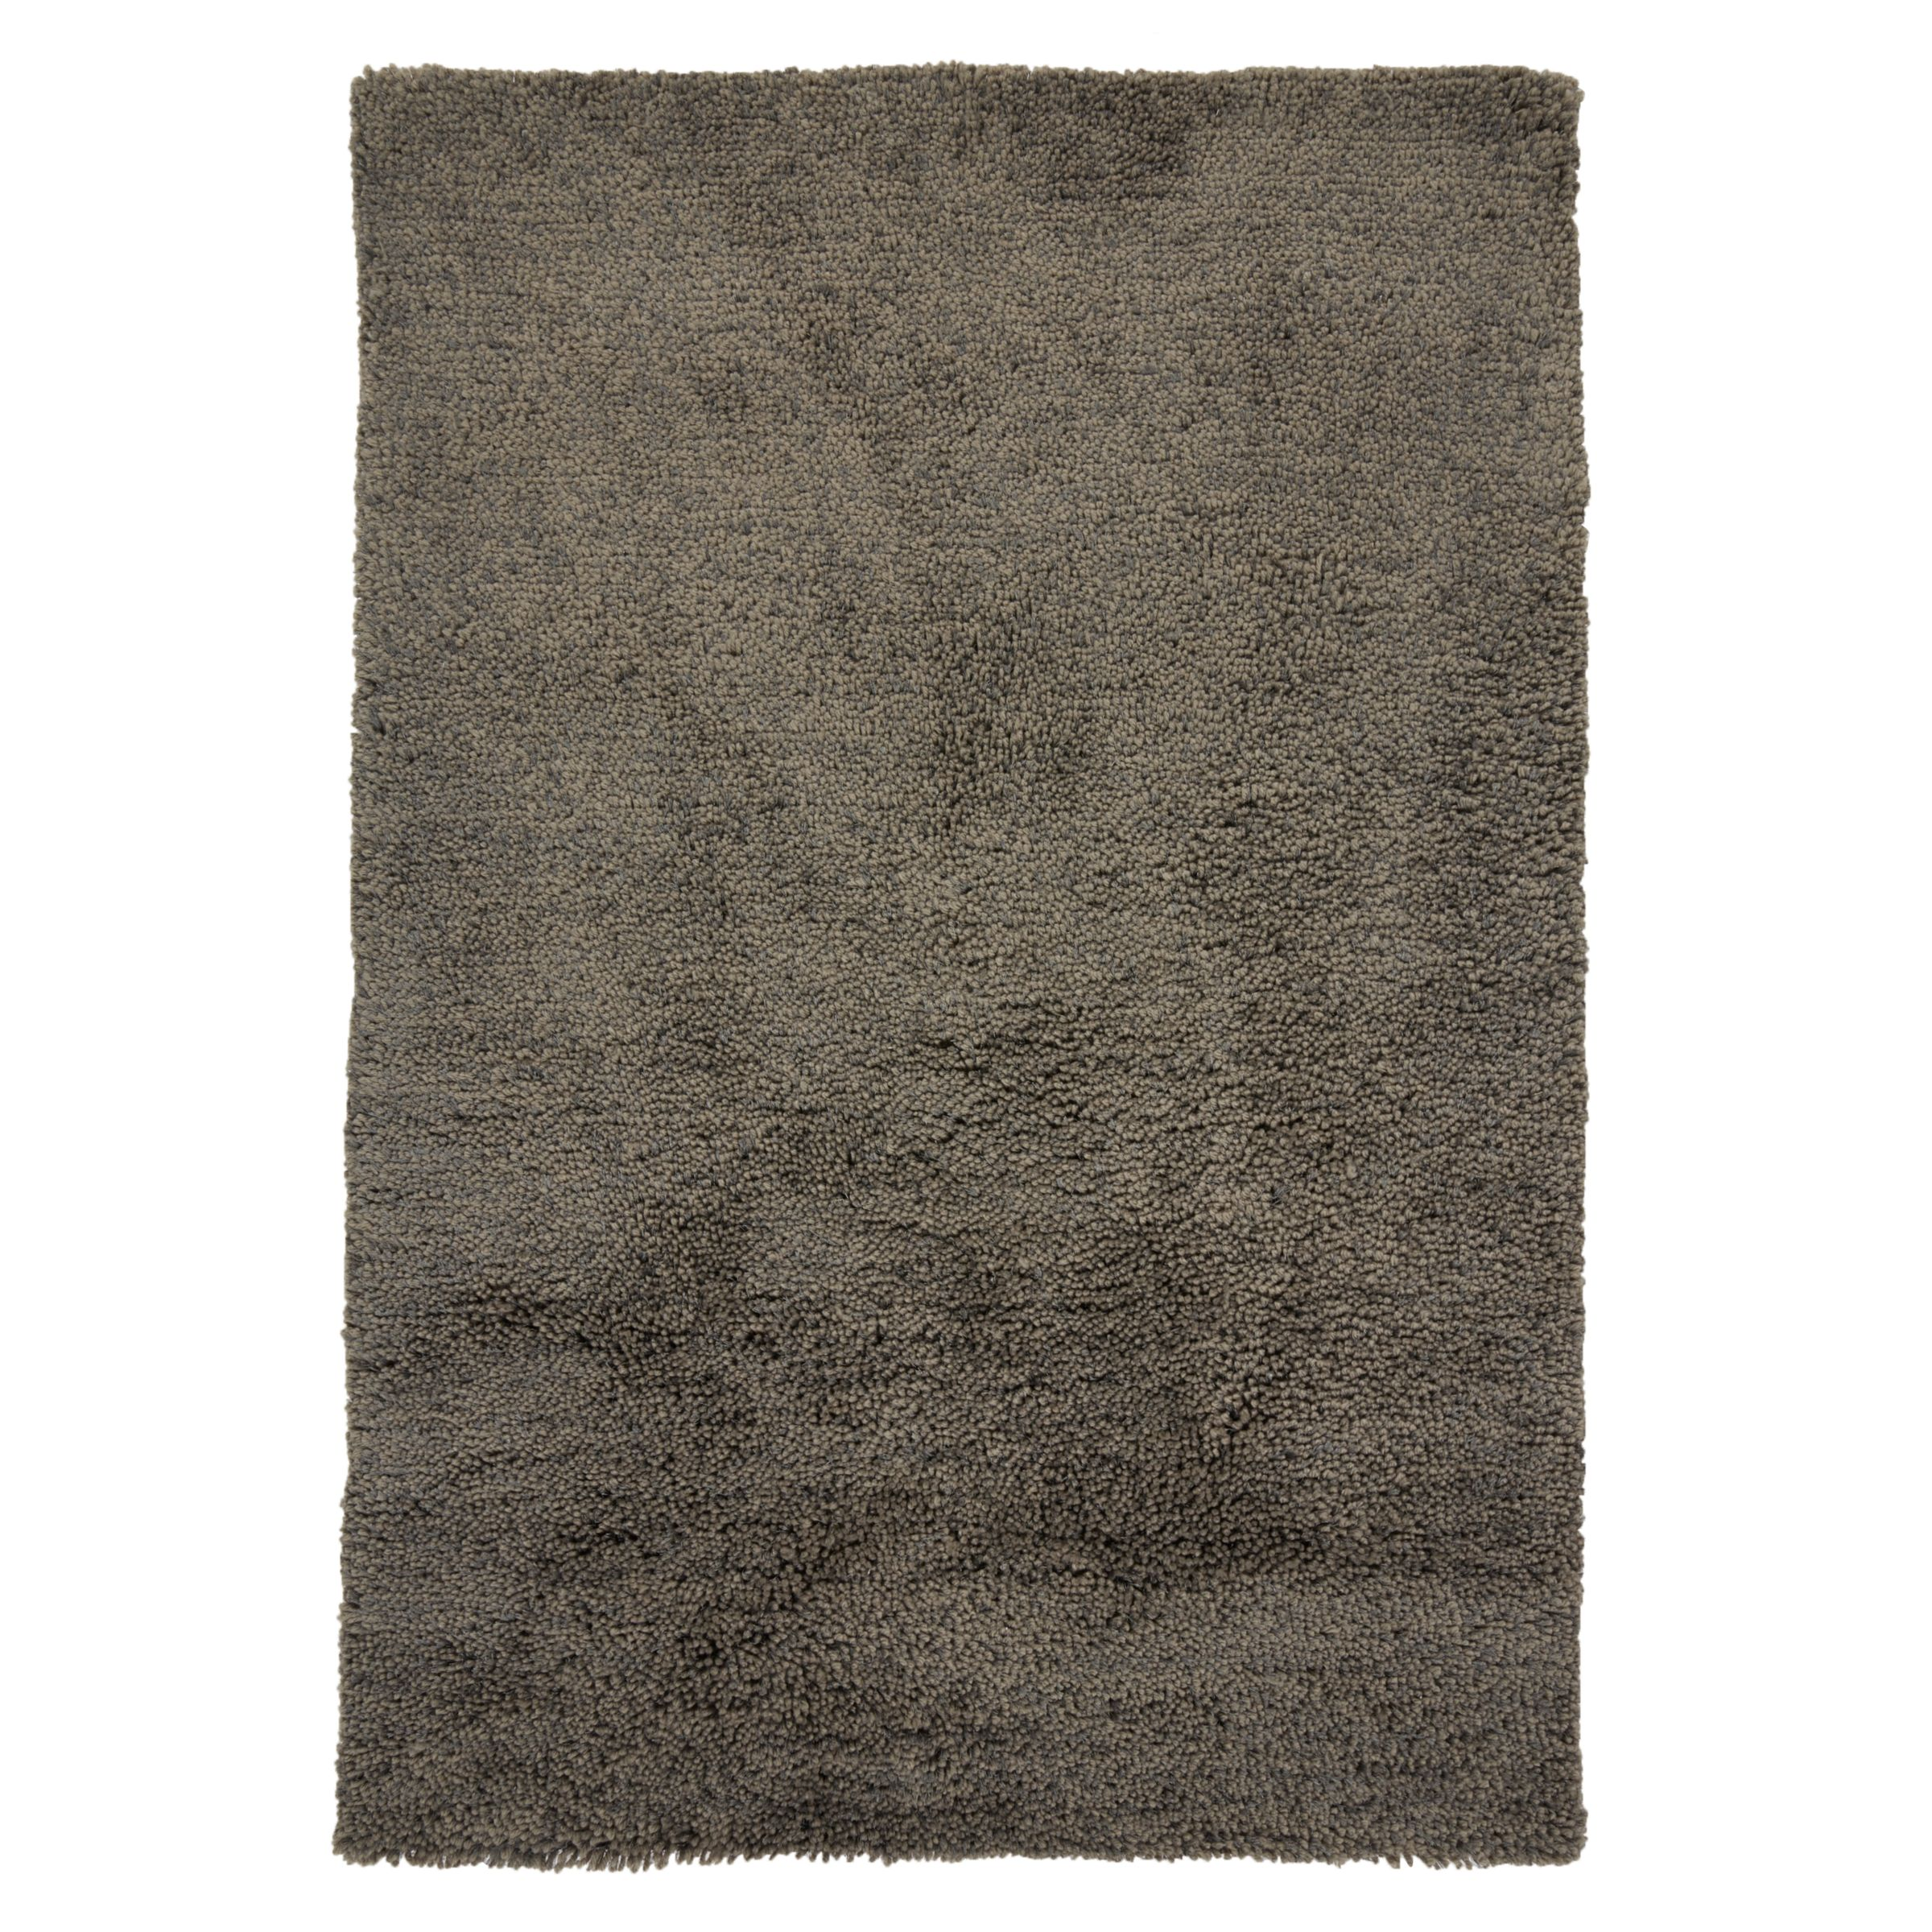 John Lewis & Partners Bliss Shaggy Rug, L230 x W160cm, Steel